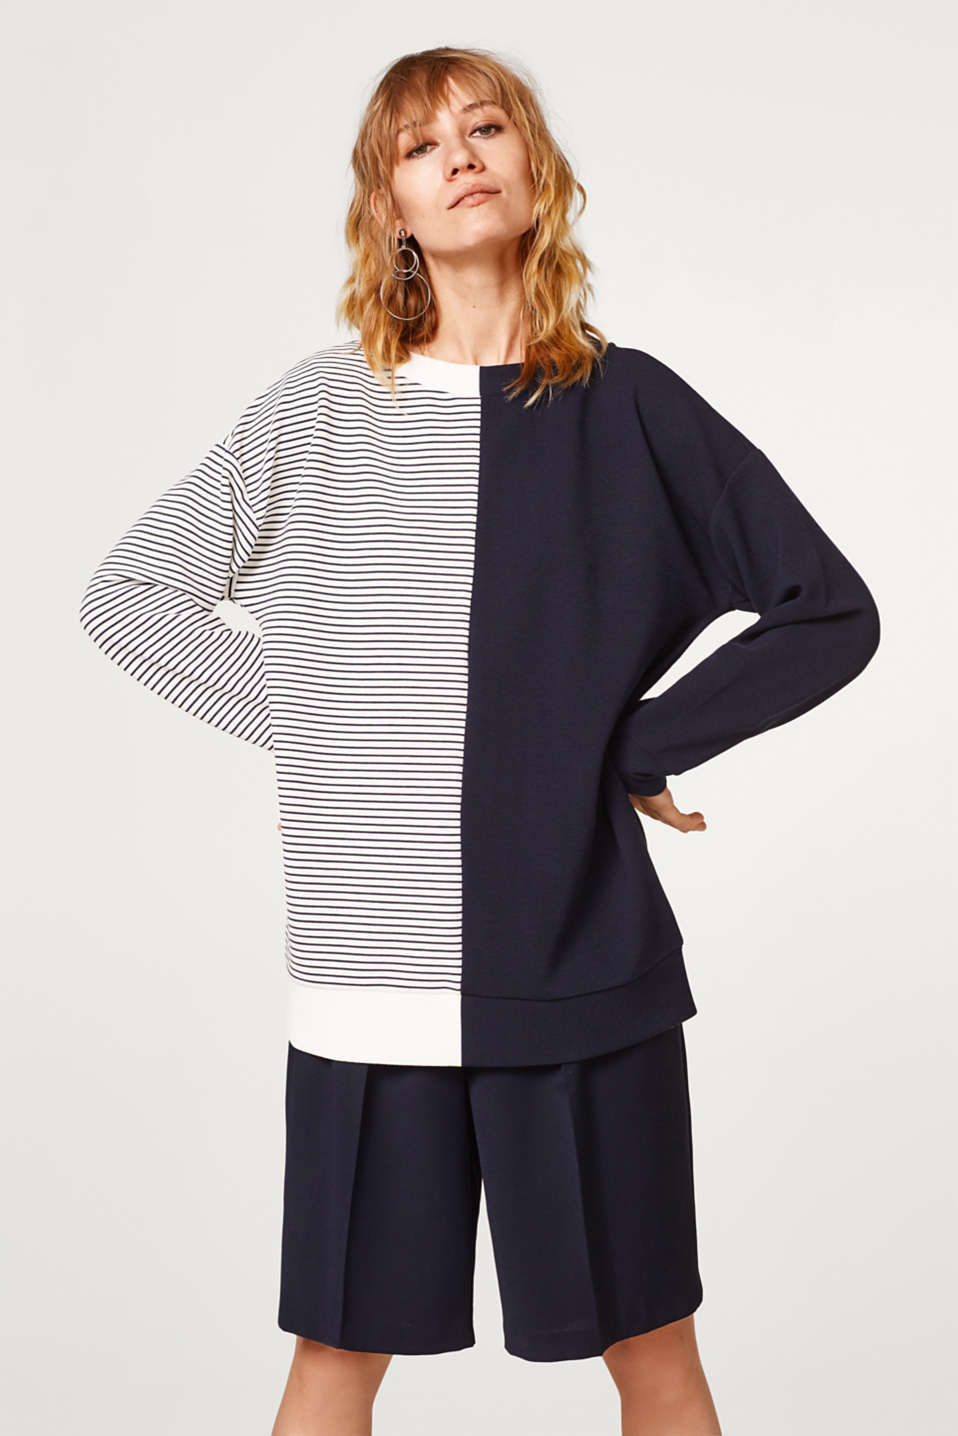 Esprit - Mix + match sweatshirt with a loose fit